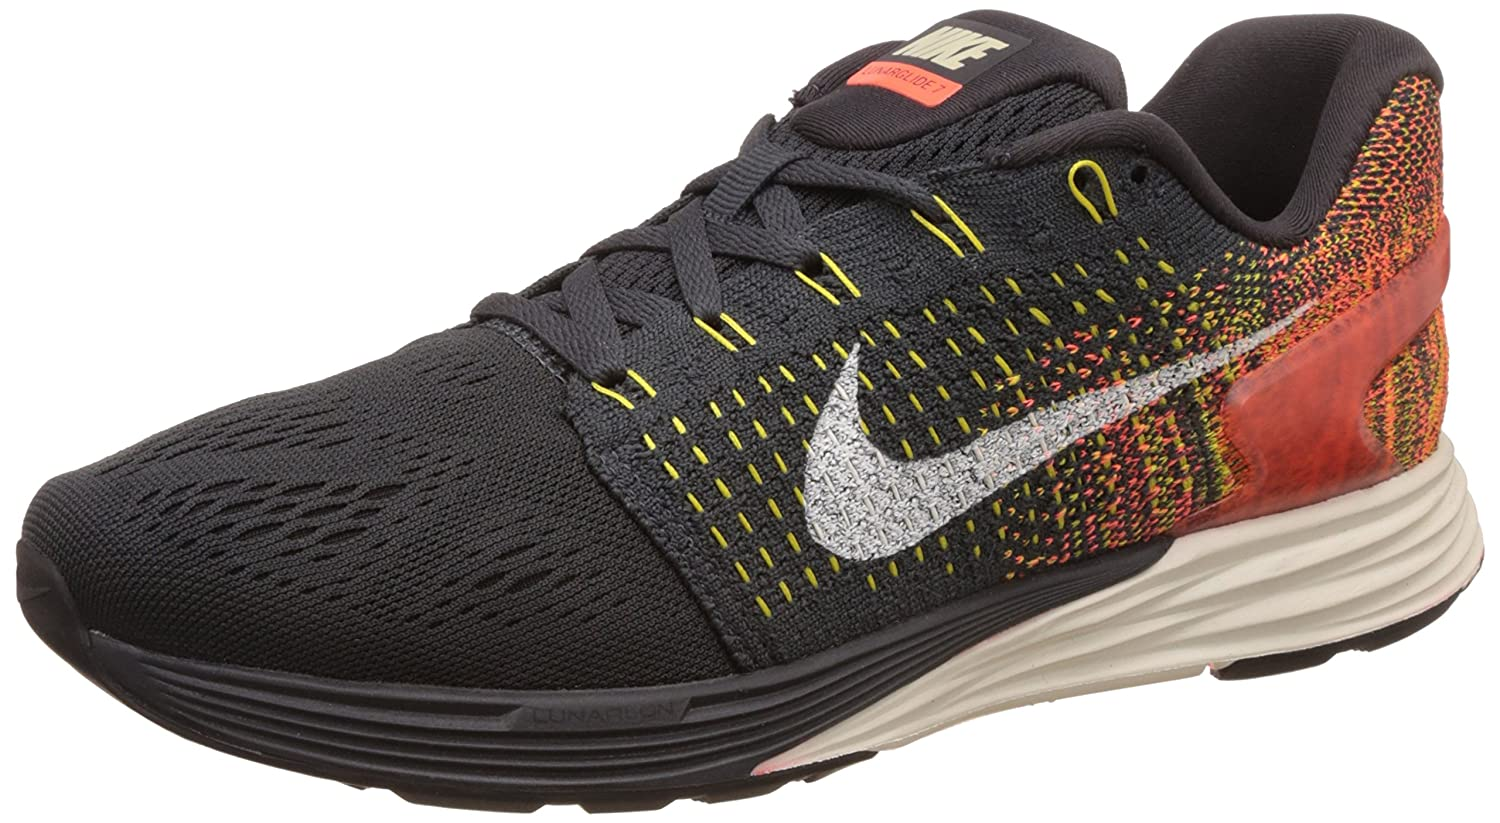 check out d85c3 389a3 Nike Women s Wmns Lunarglide 7, ANTHRACITE SAIL-TR YELLOW-HYPER ORANGE, 7.5  US  Amazon.ca  Shoes   Handbags